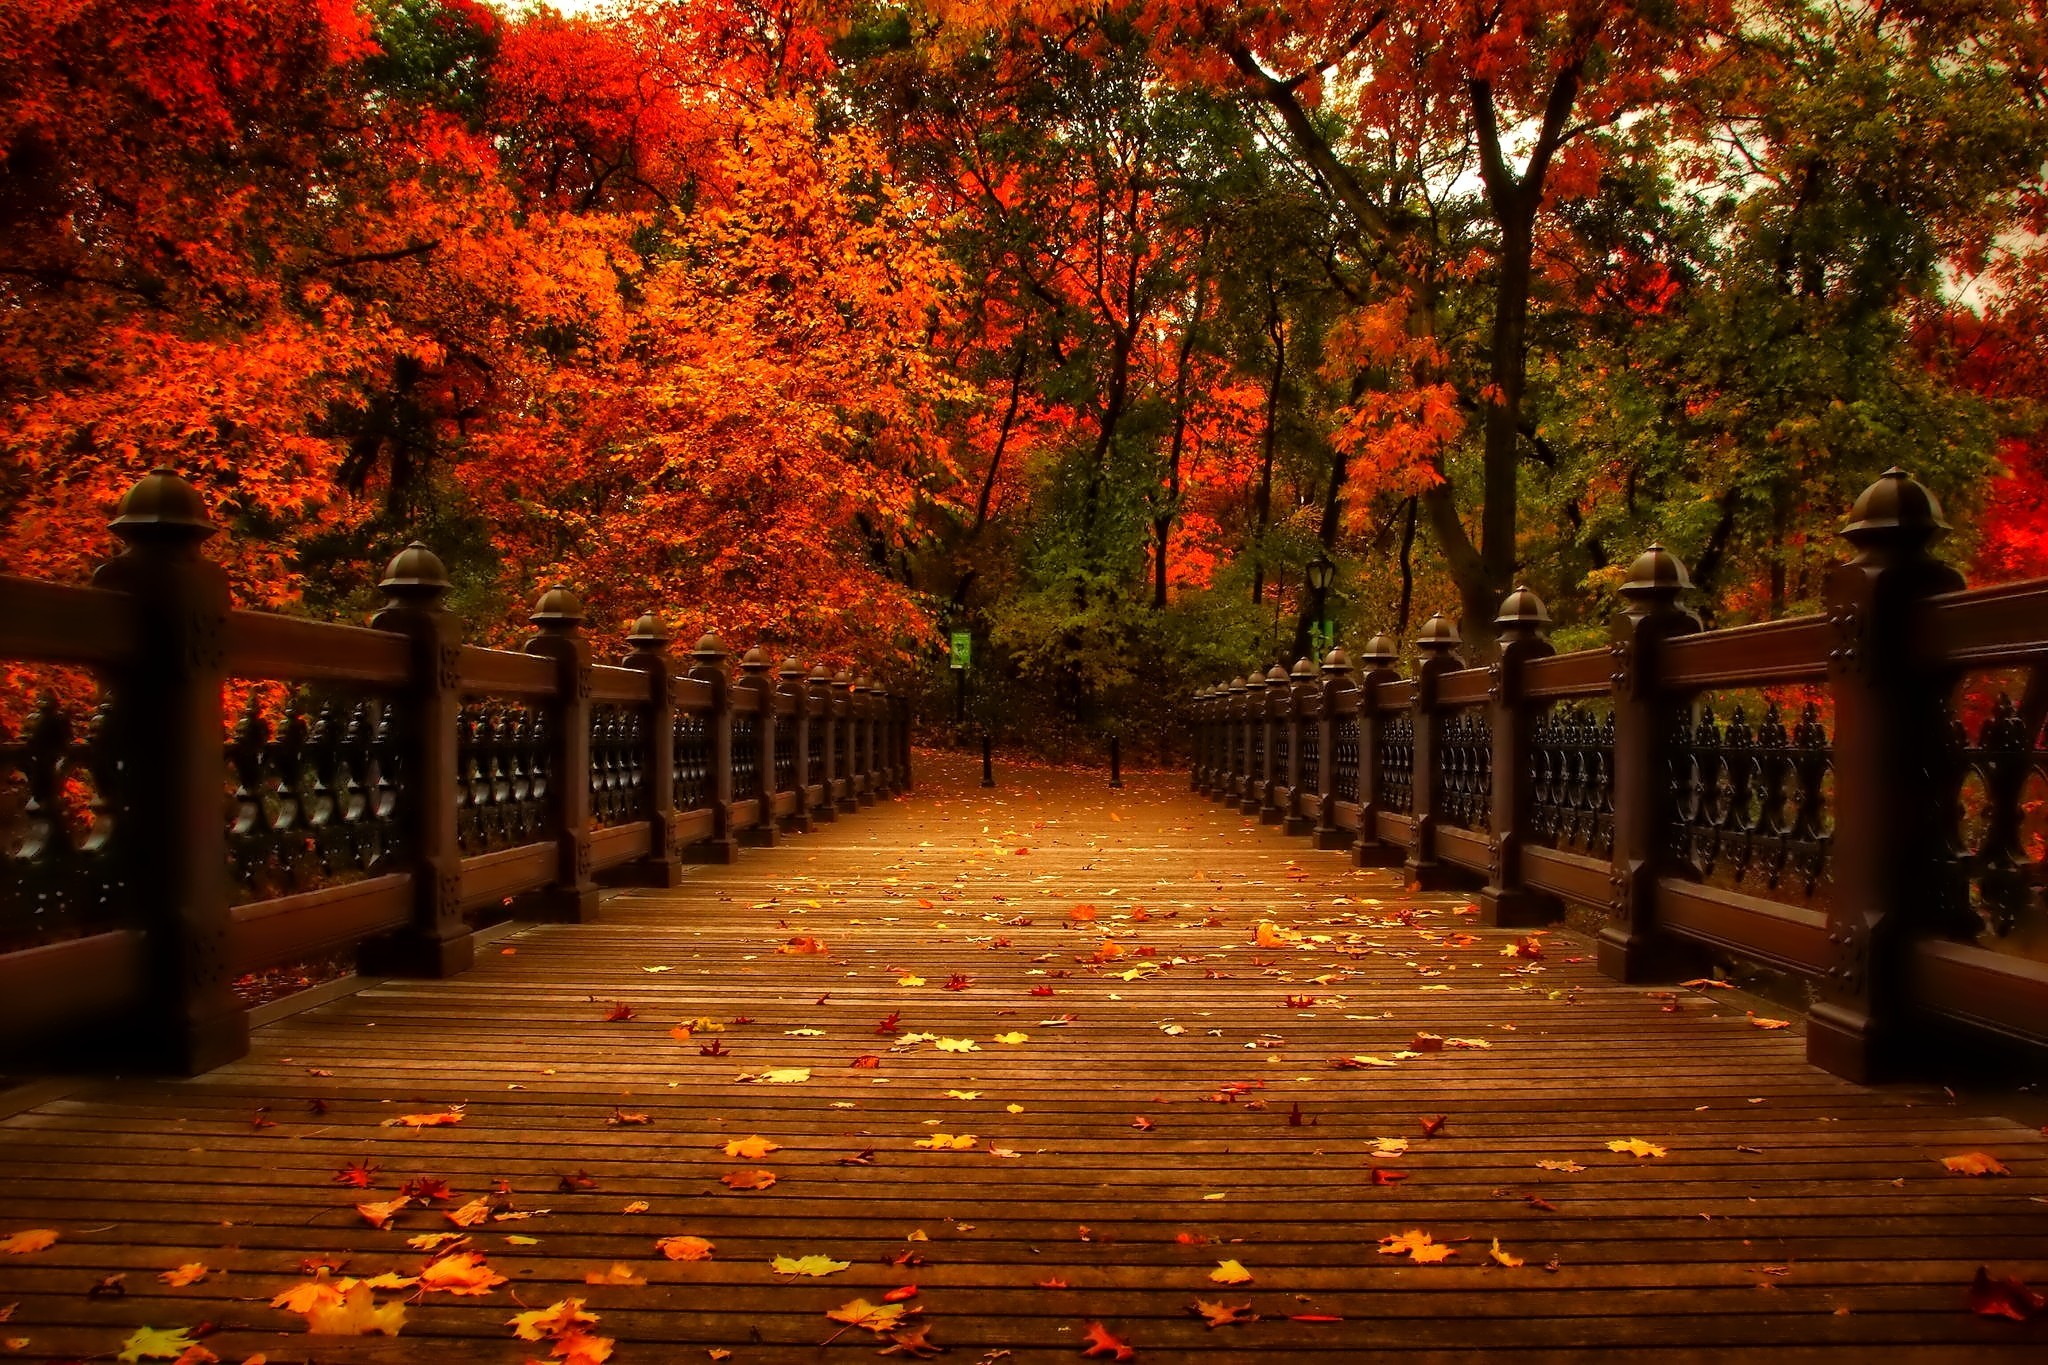 November Colorful Golden Shine Tree Glow Branches Autumn Colors Nice Fall  Nature Beautiful Lovely Reflection Foliage